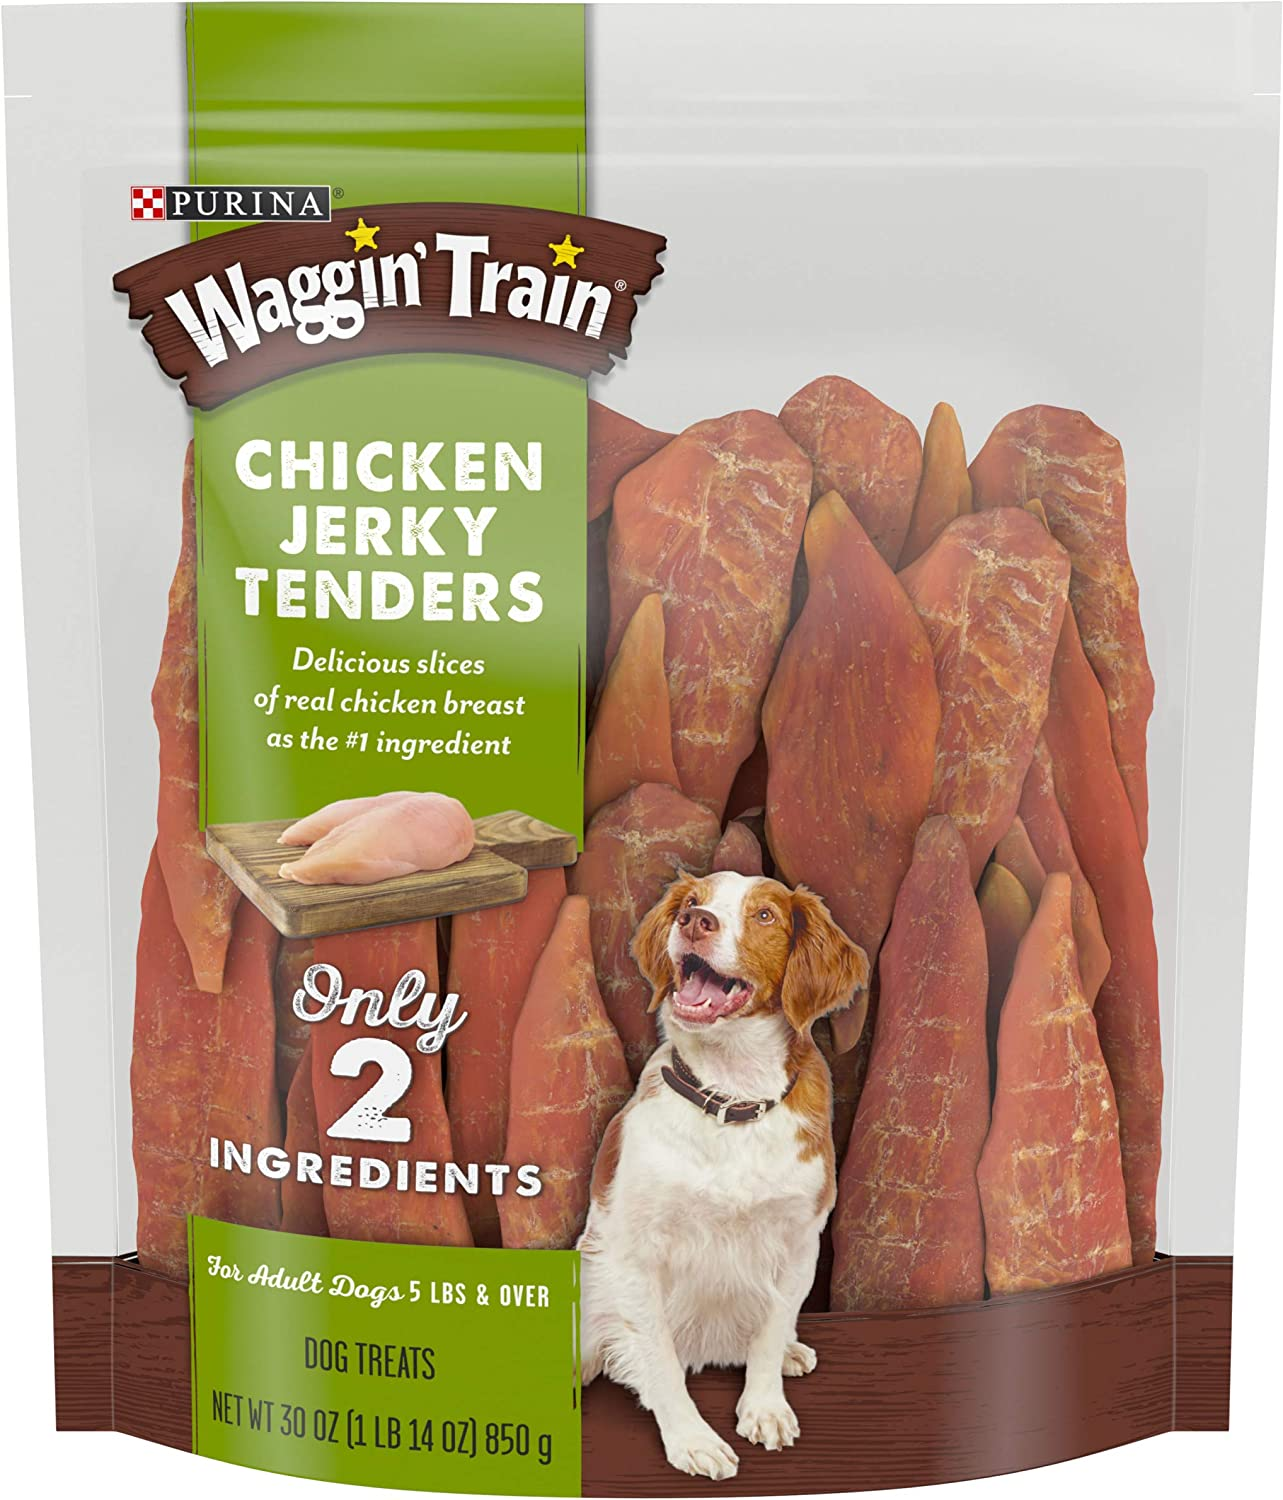 Purina Waggin' Train Limited Ingredient, Grain Free Dog Treat, Chicken Jerky Tenders - 30 oz. Pouch (00807020171198)